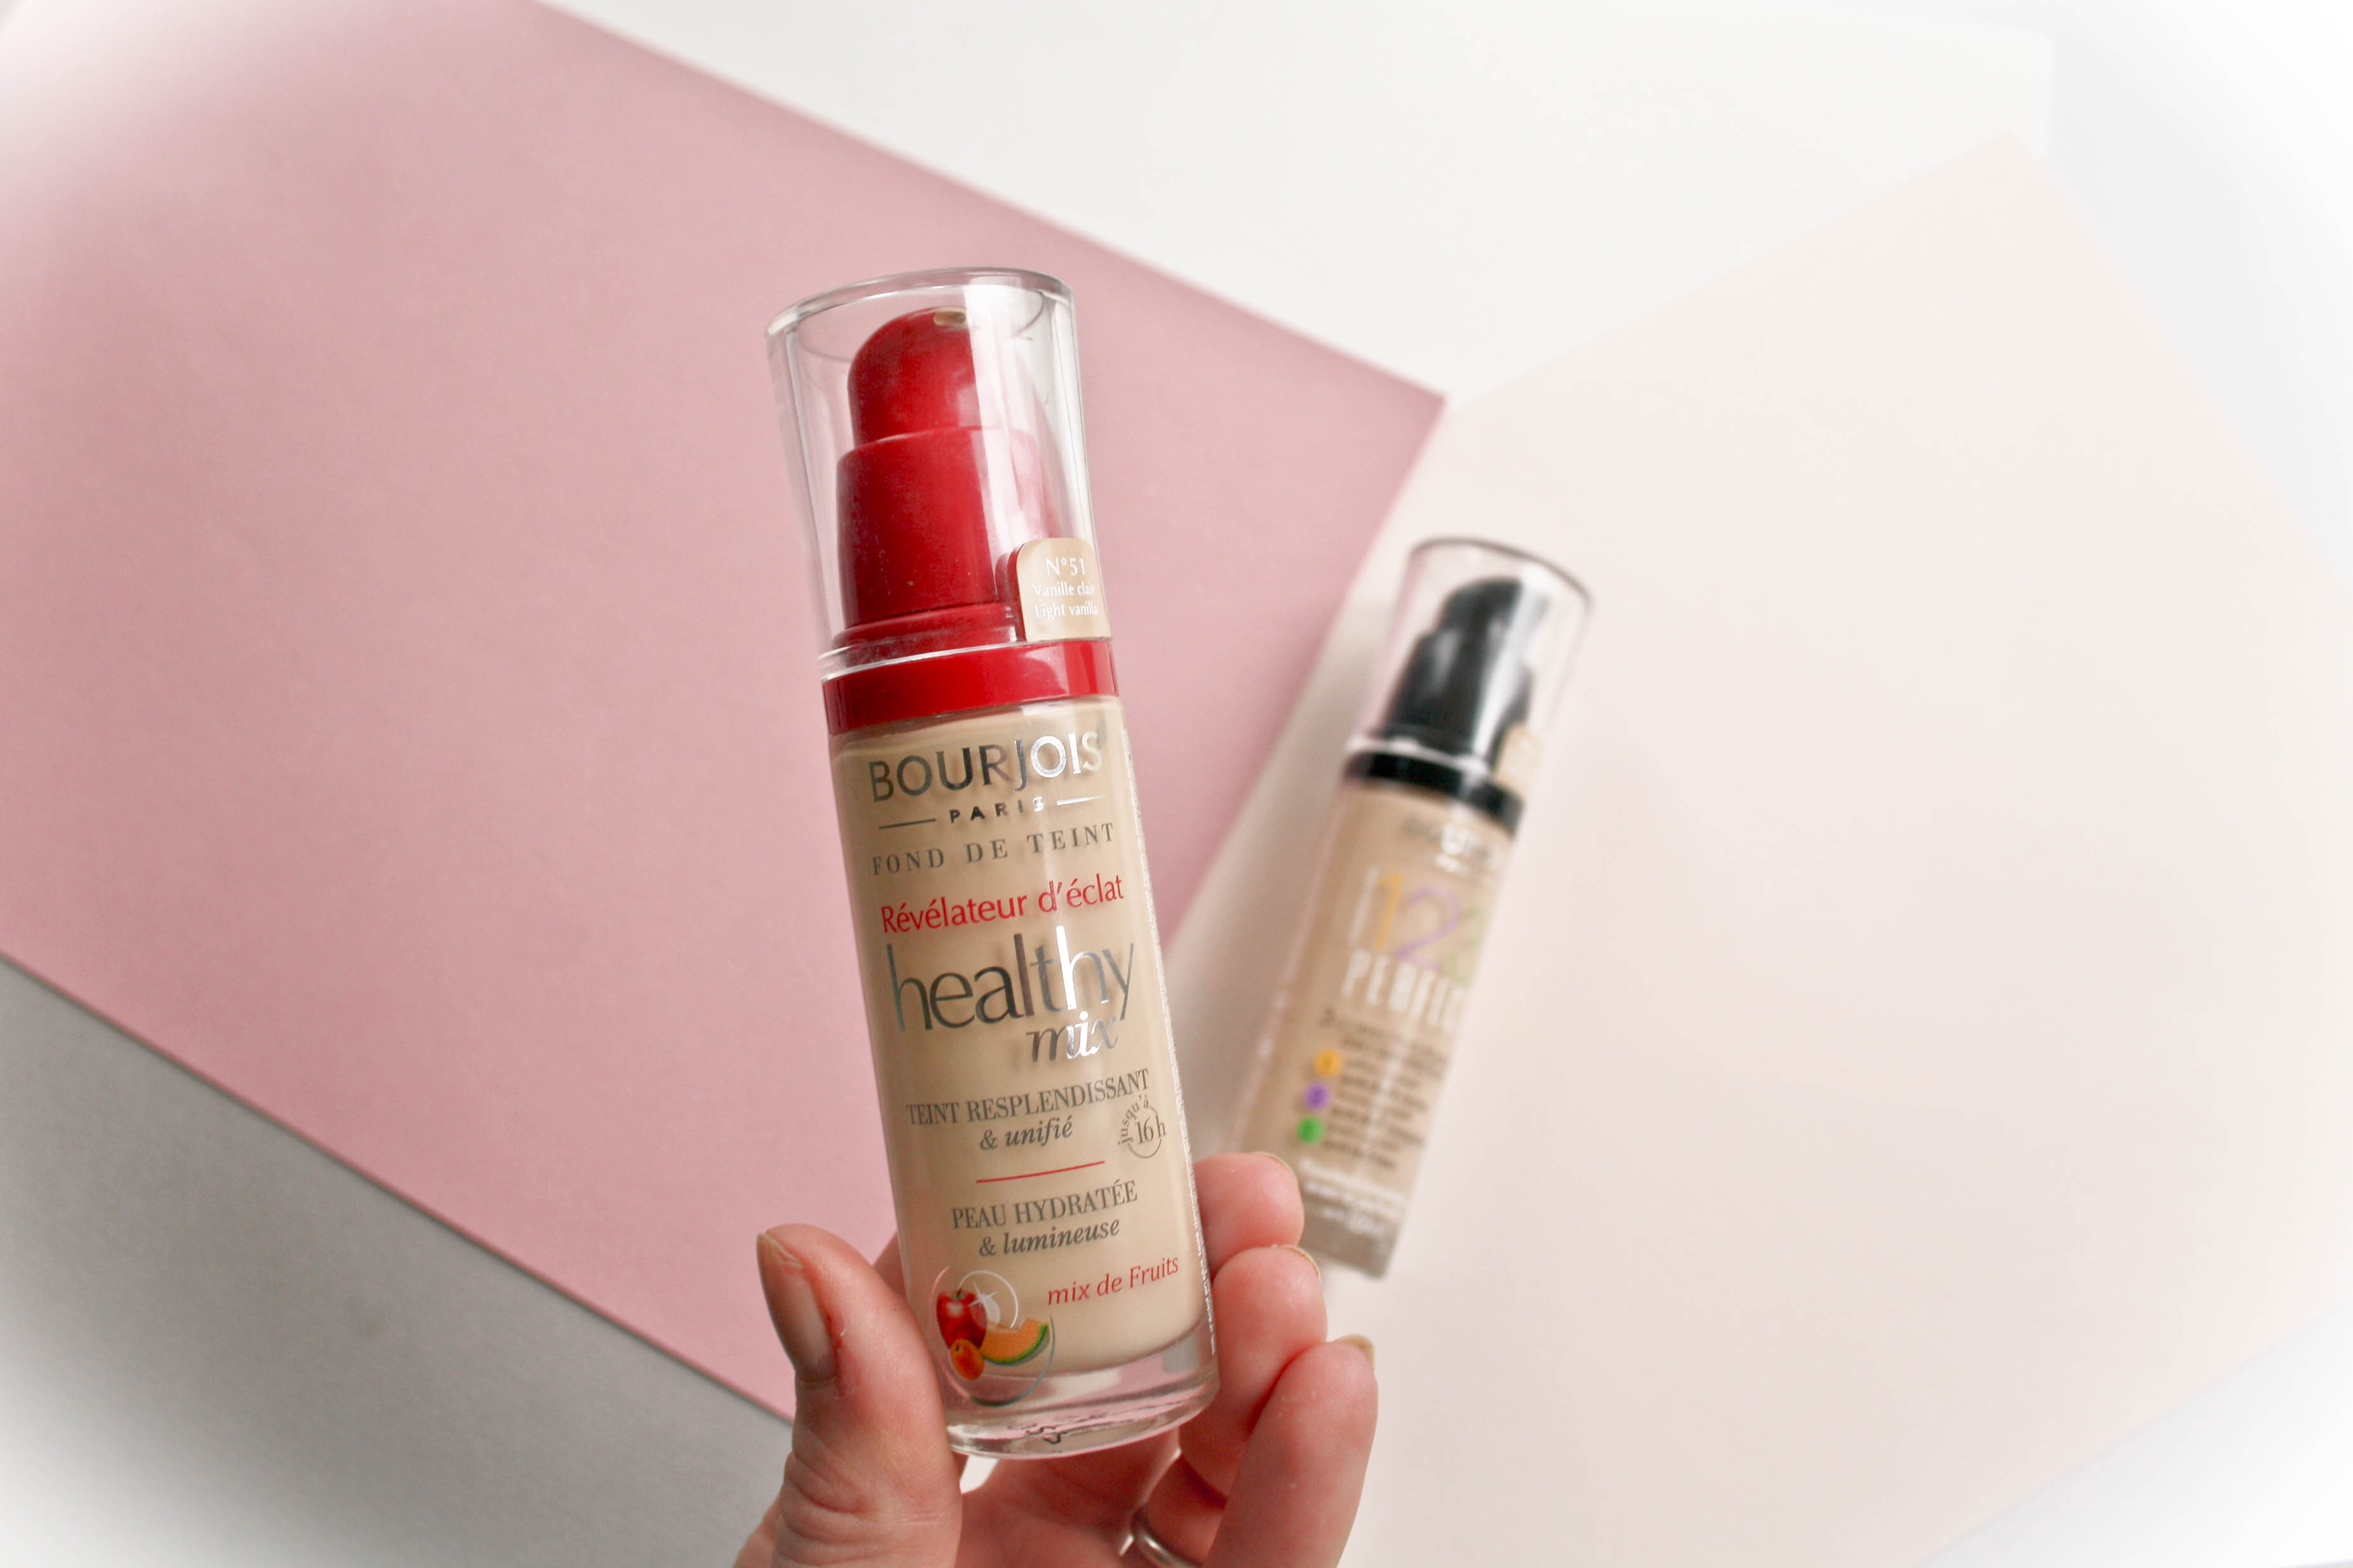 bourjois-healthy-mix-foundation-review